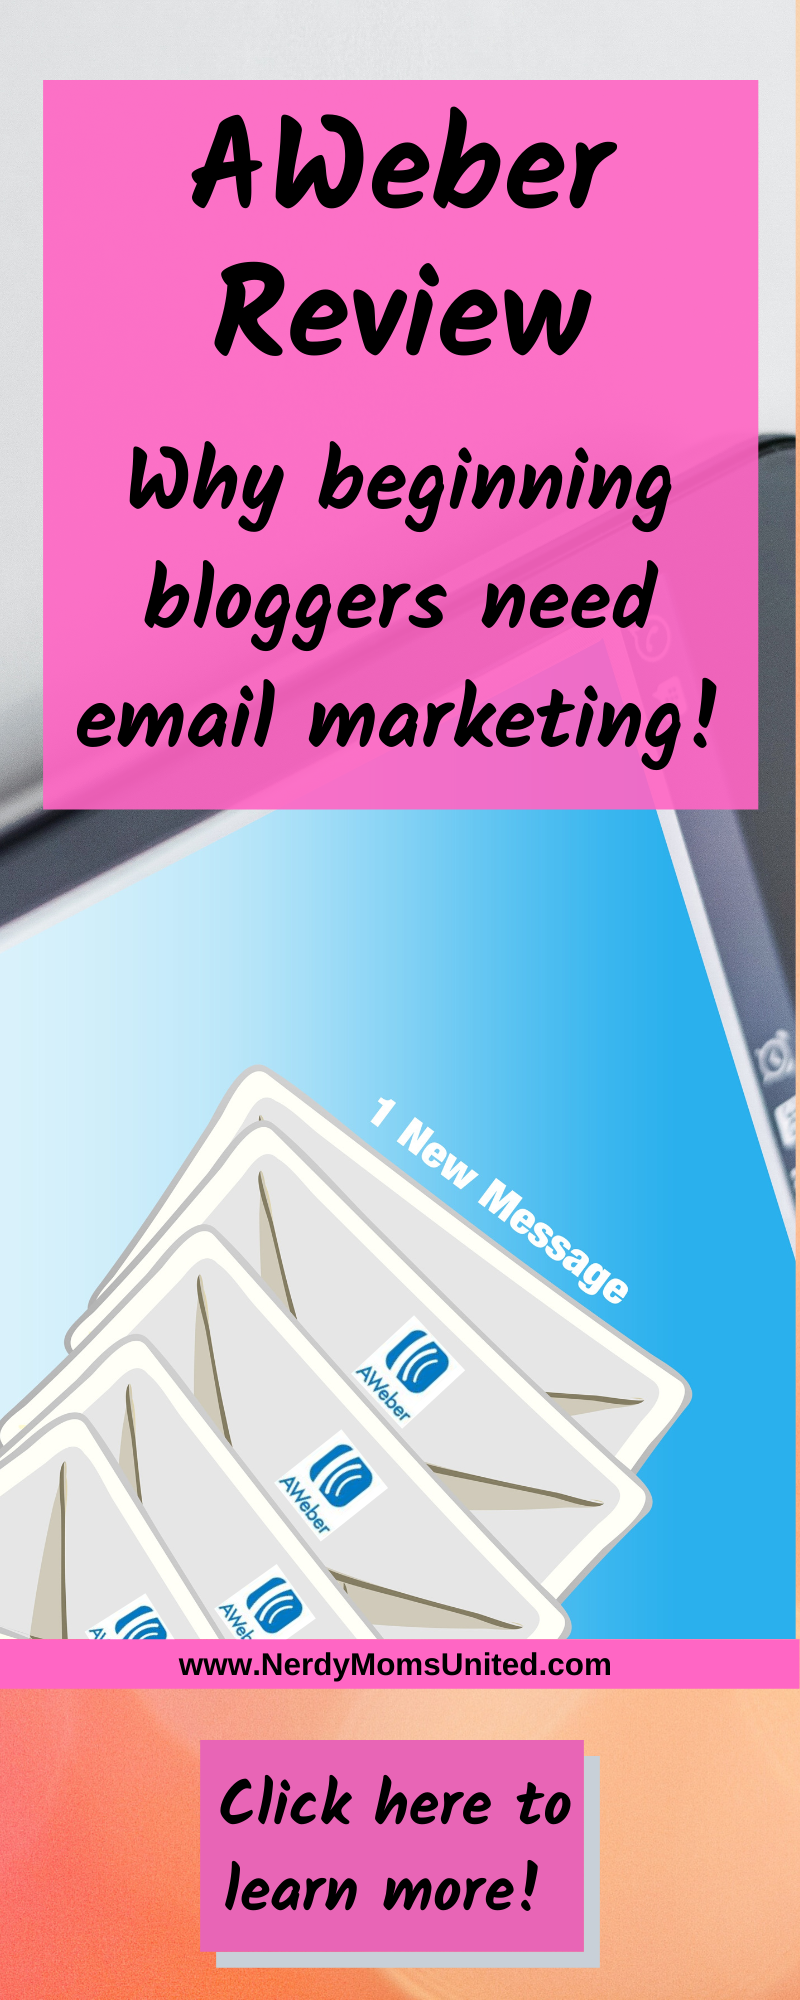 Buy Email Marketing Aweber Us Online Voucher Code Printable